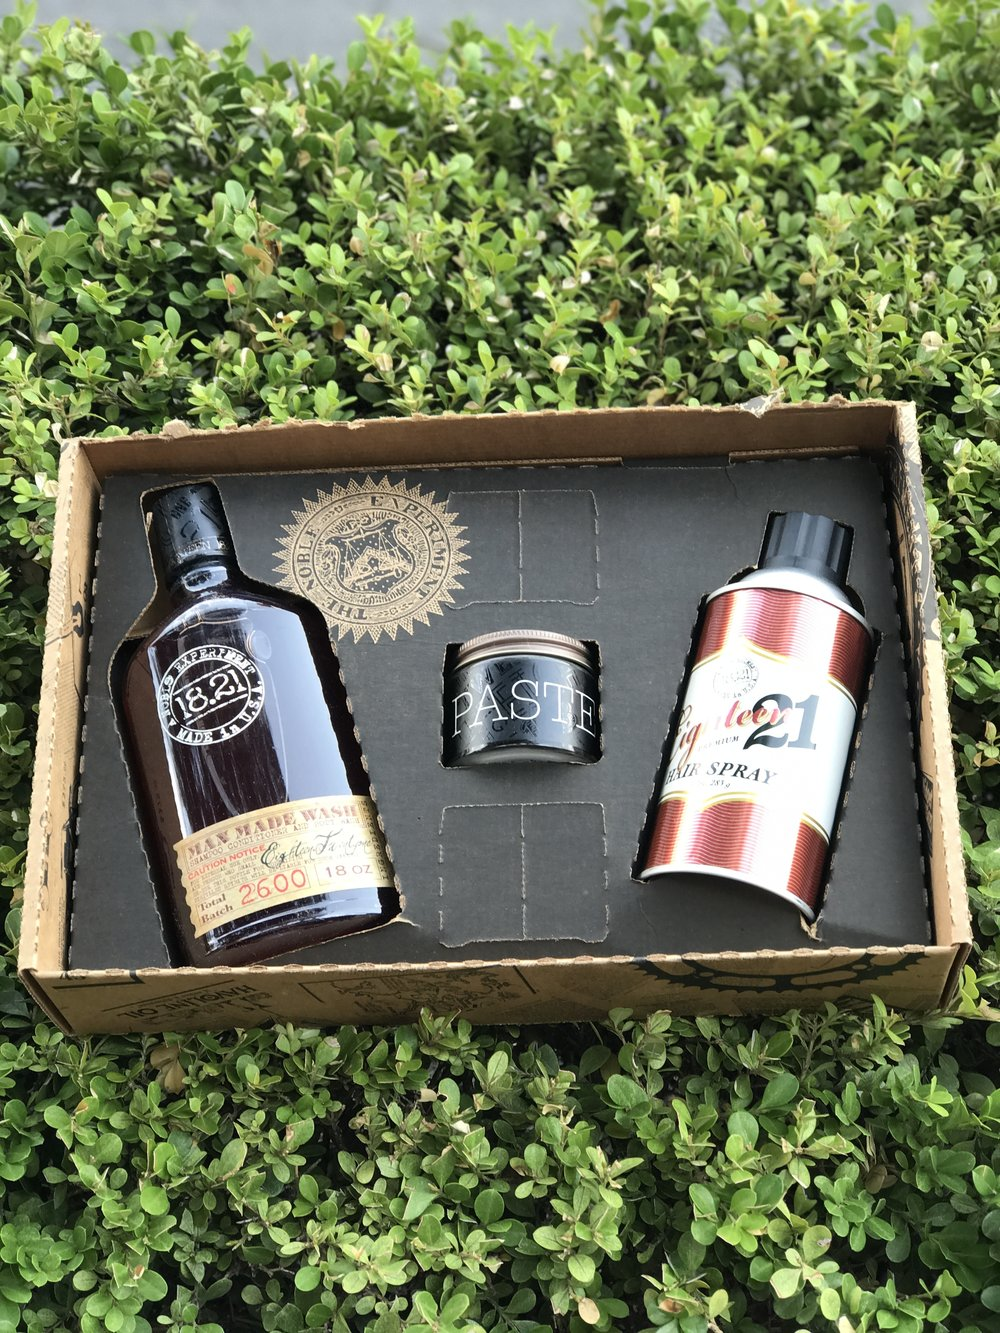 1821 Man Made Set - Get the 1821 man made wash (shampoo +conditioner+bodywash) styling product of your choice (paste, pomade, clay) and the finishing hairspray.$60 (original $72)